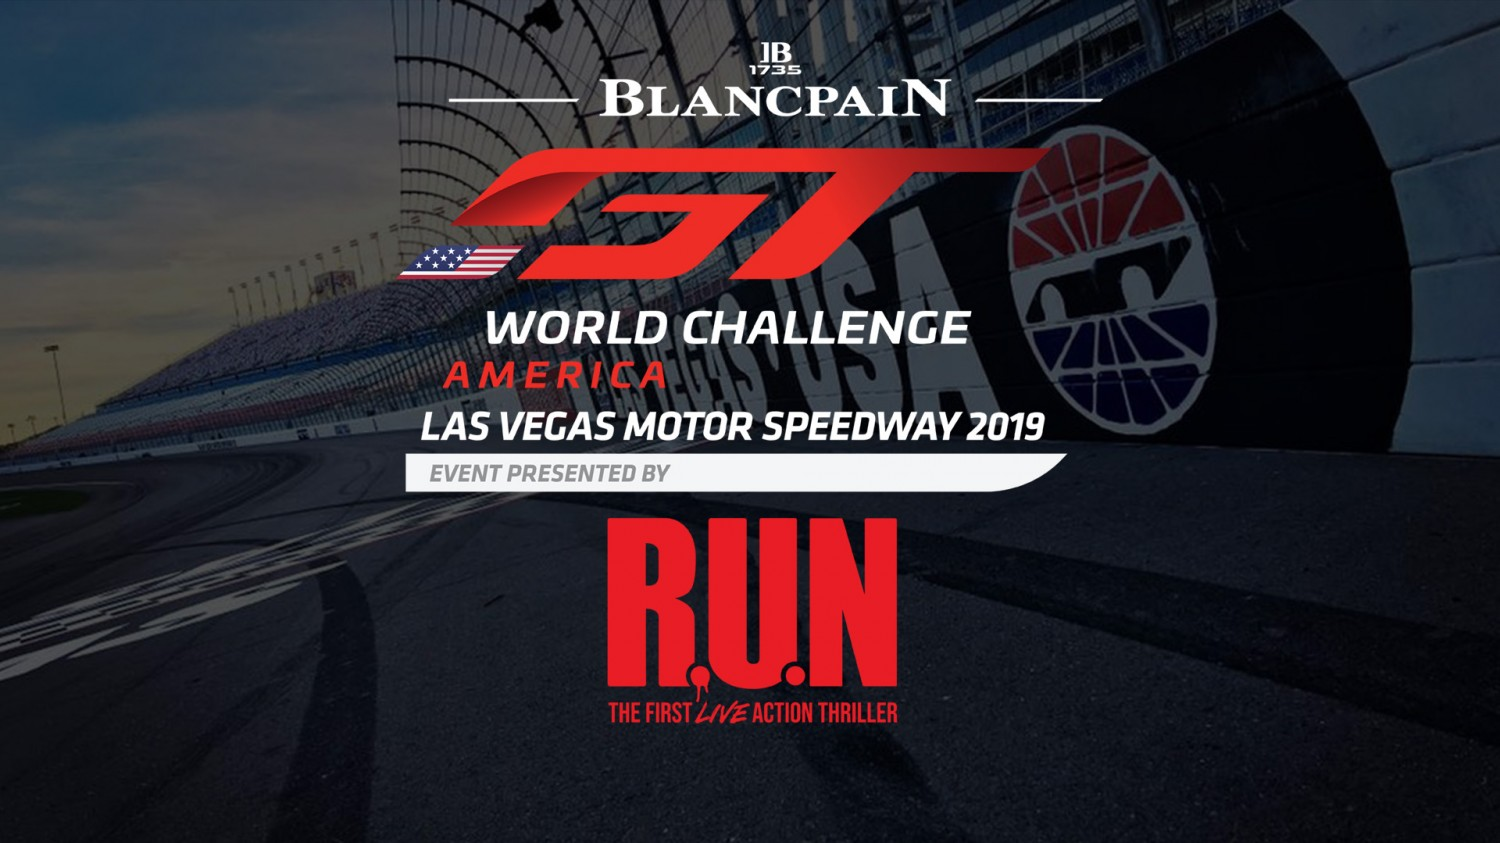 Blancpain GT World Challenge America Partners with R.U.N – The First Live Action Thriller Produced by Cirque du Soleil